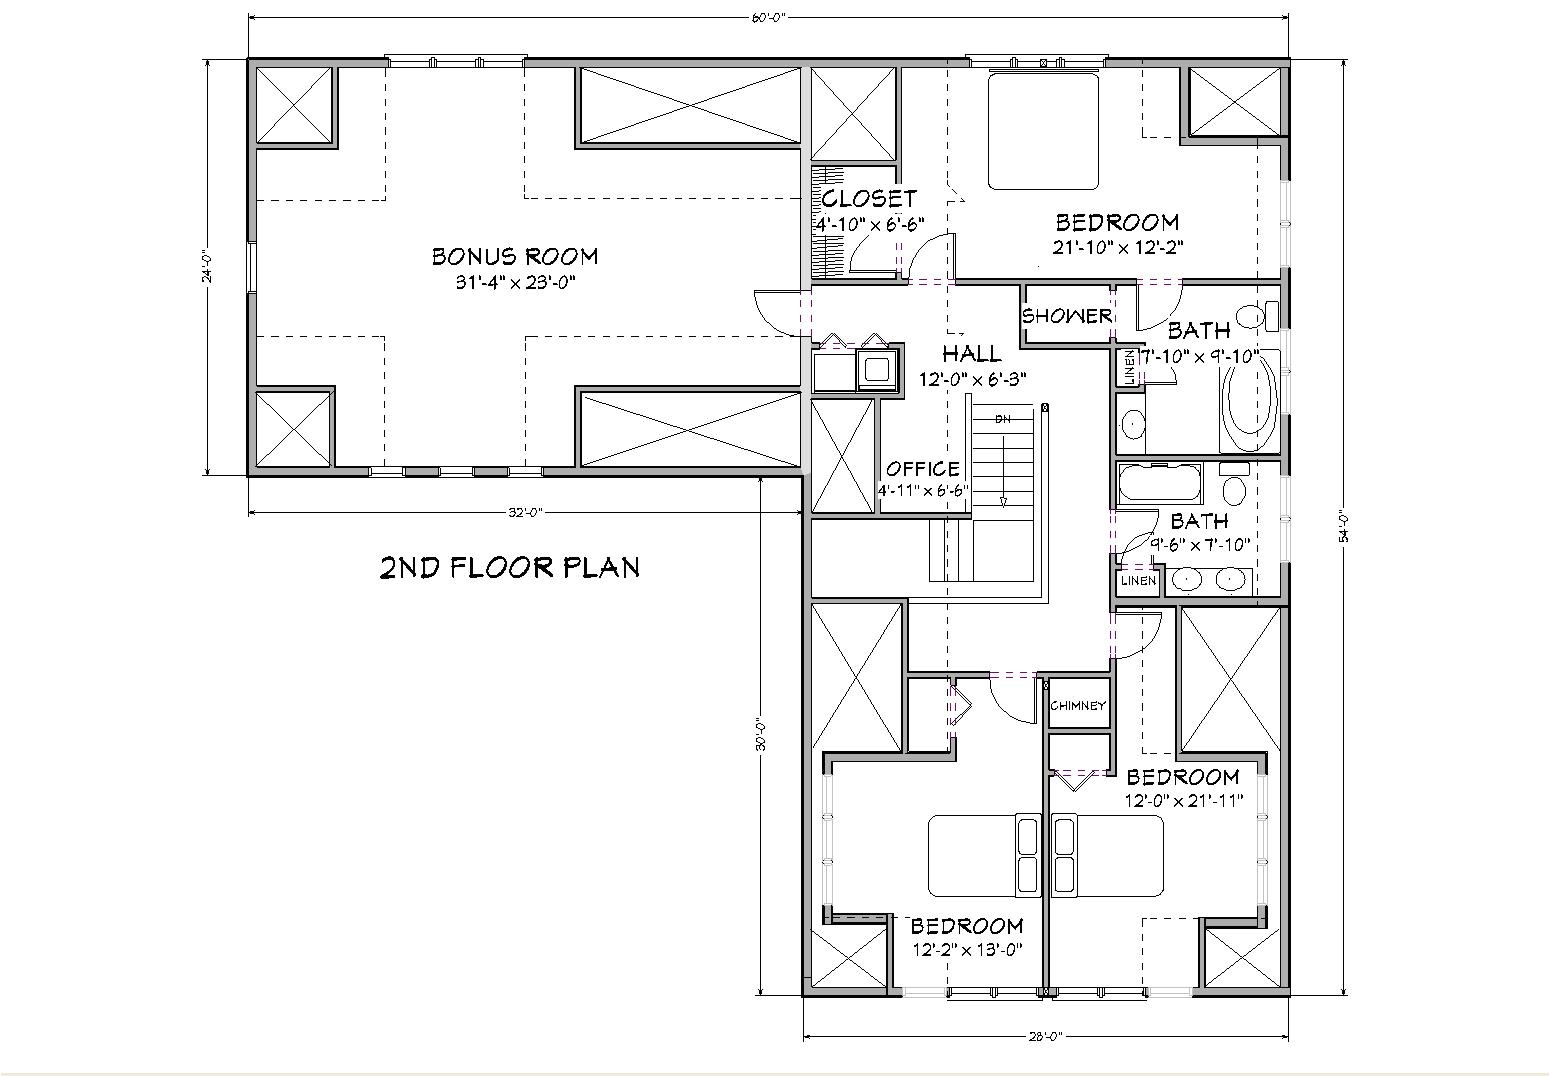 3000 square foot home plans